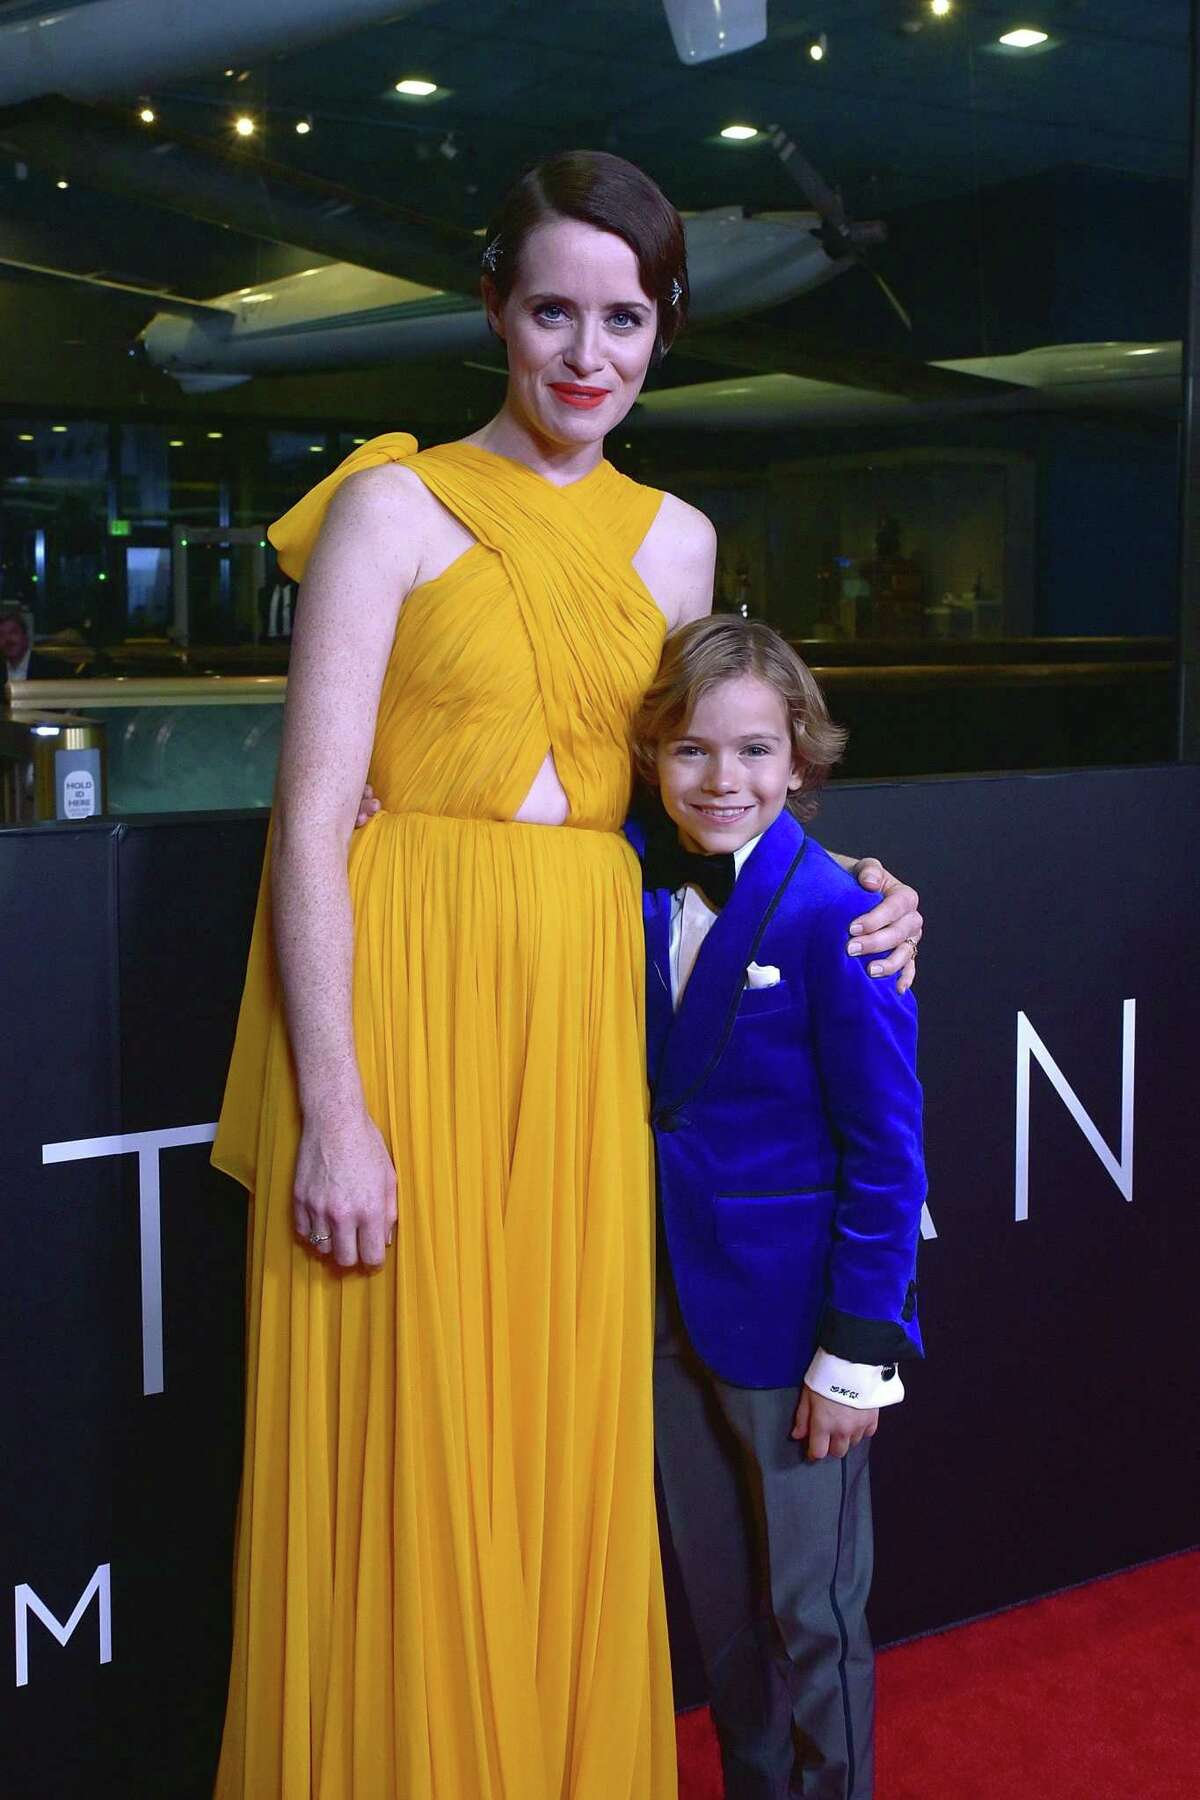 Actors Claire Foy and Gavin Warren attend the